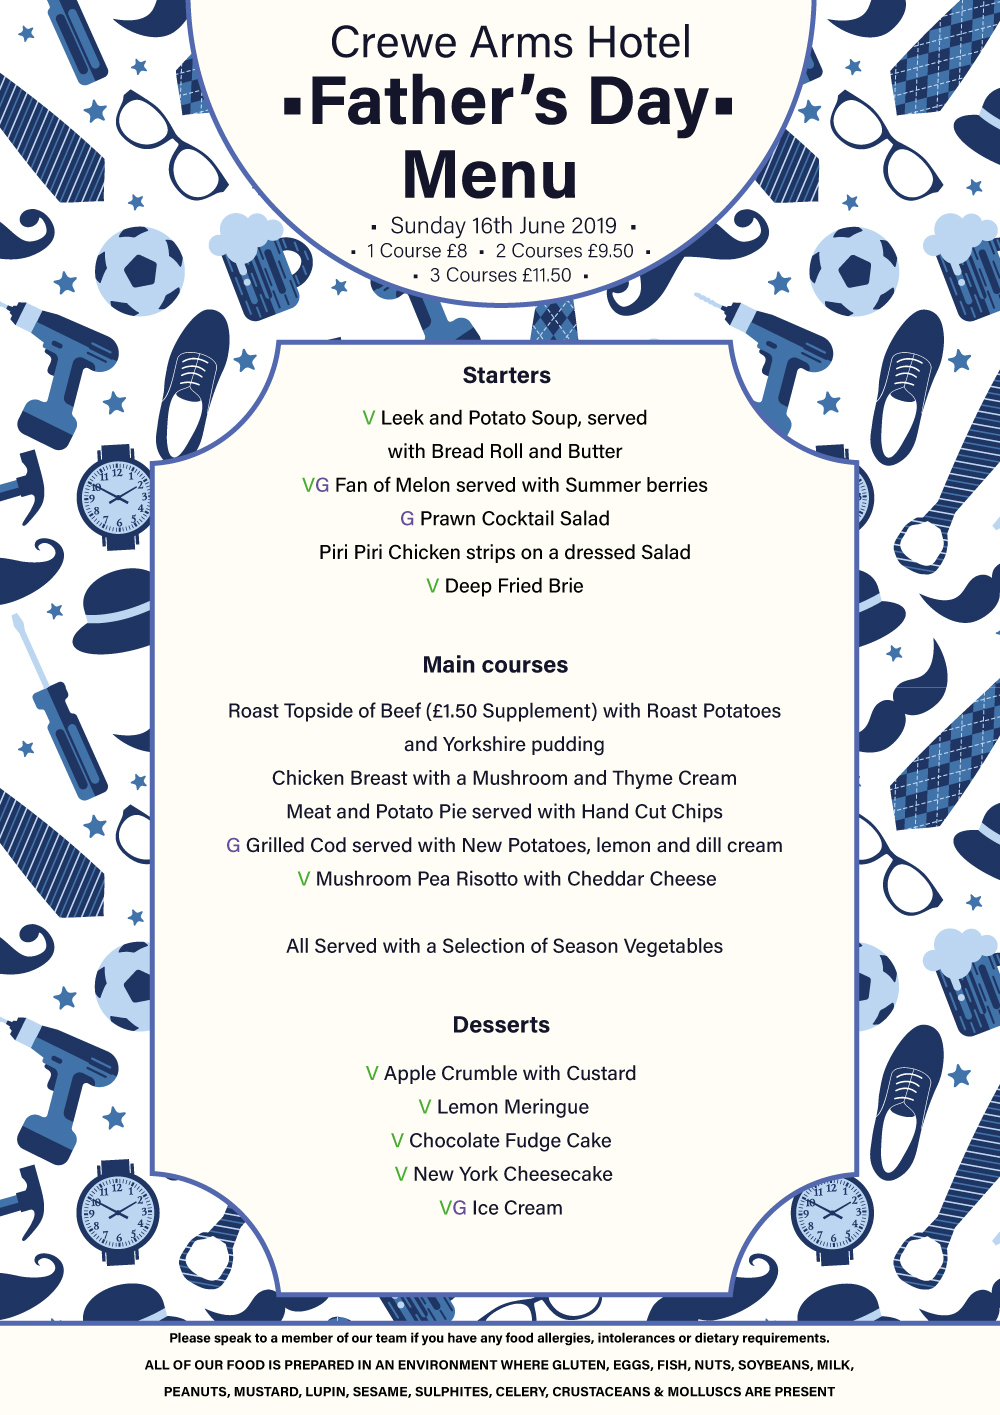 Crewe Arms Hotel Father's Day Menu